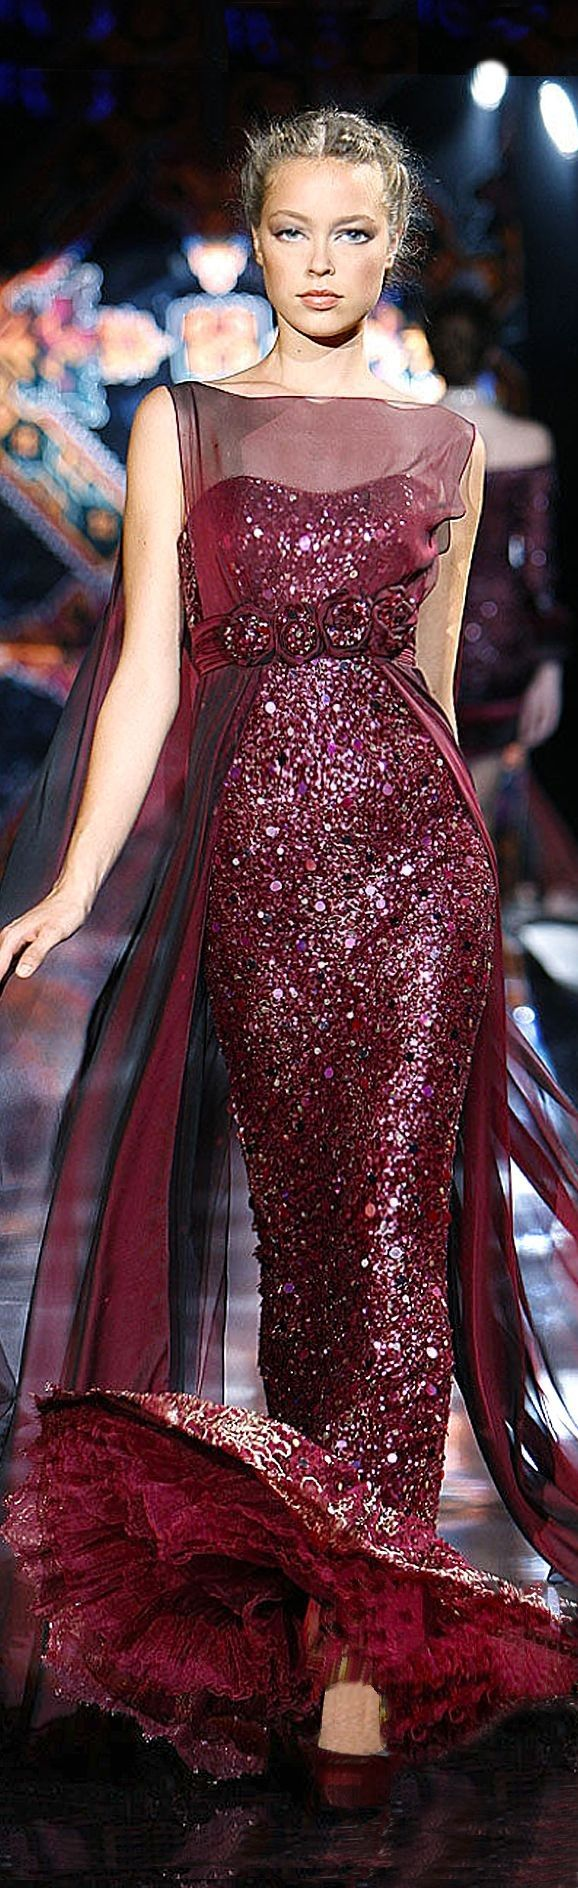 ⌘ c o c k t a i l s ⌘ c o u t u r e ♠️ {perfect cocktail dress. drink in style} ⌘ The Millionairess of Pennsylvania: Zuhair Murad burgandy red evening gown